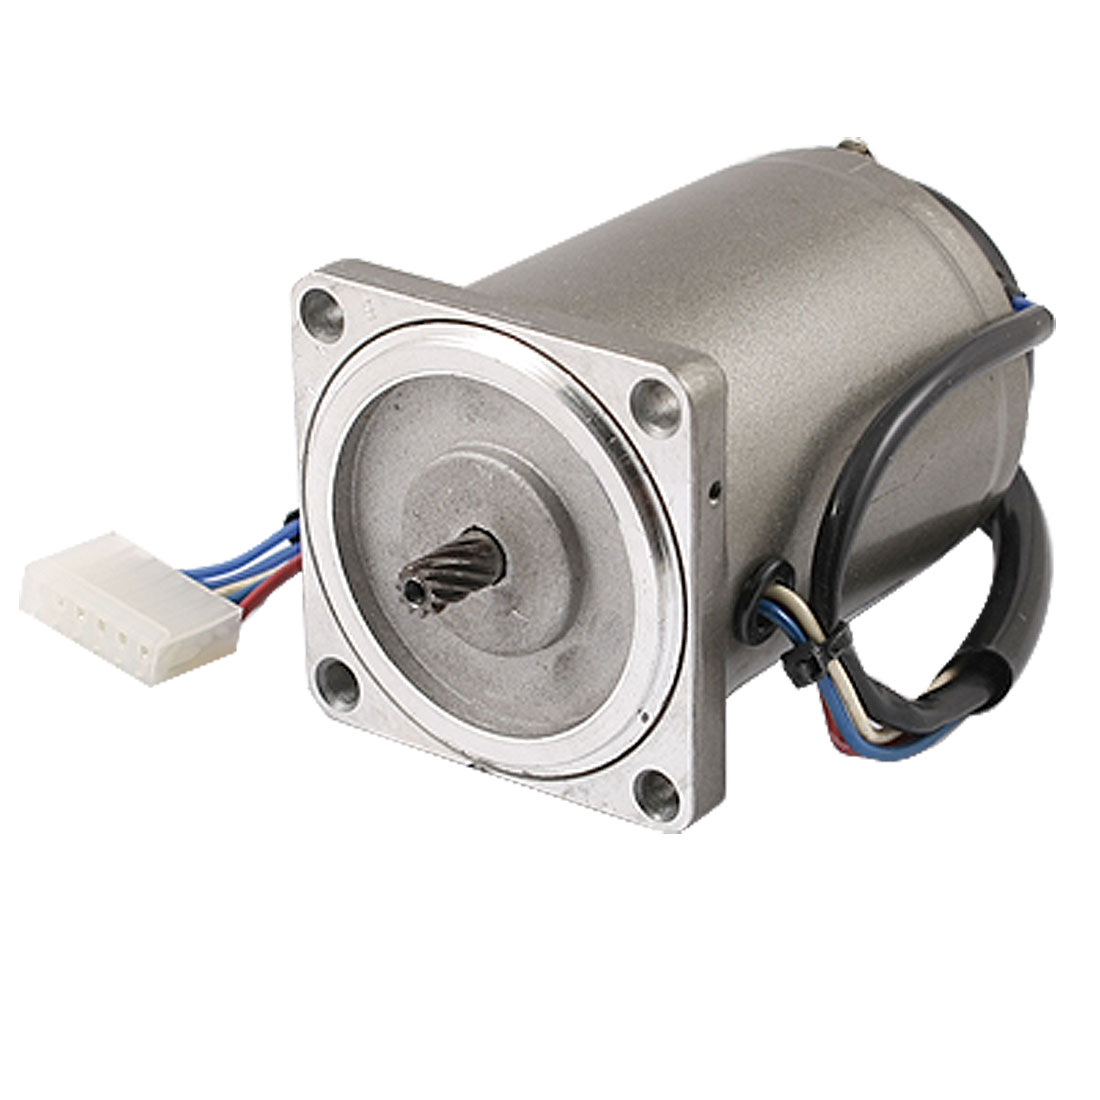 M206-402 AC 220V 6W Bevel Gear Shaft Single Phase Speed Control Motor